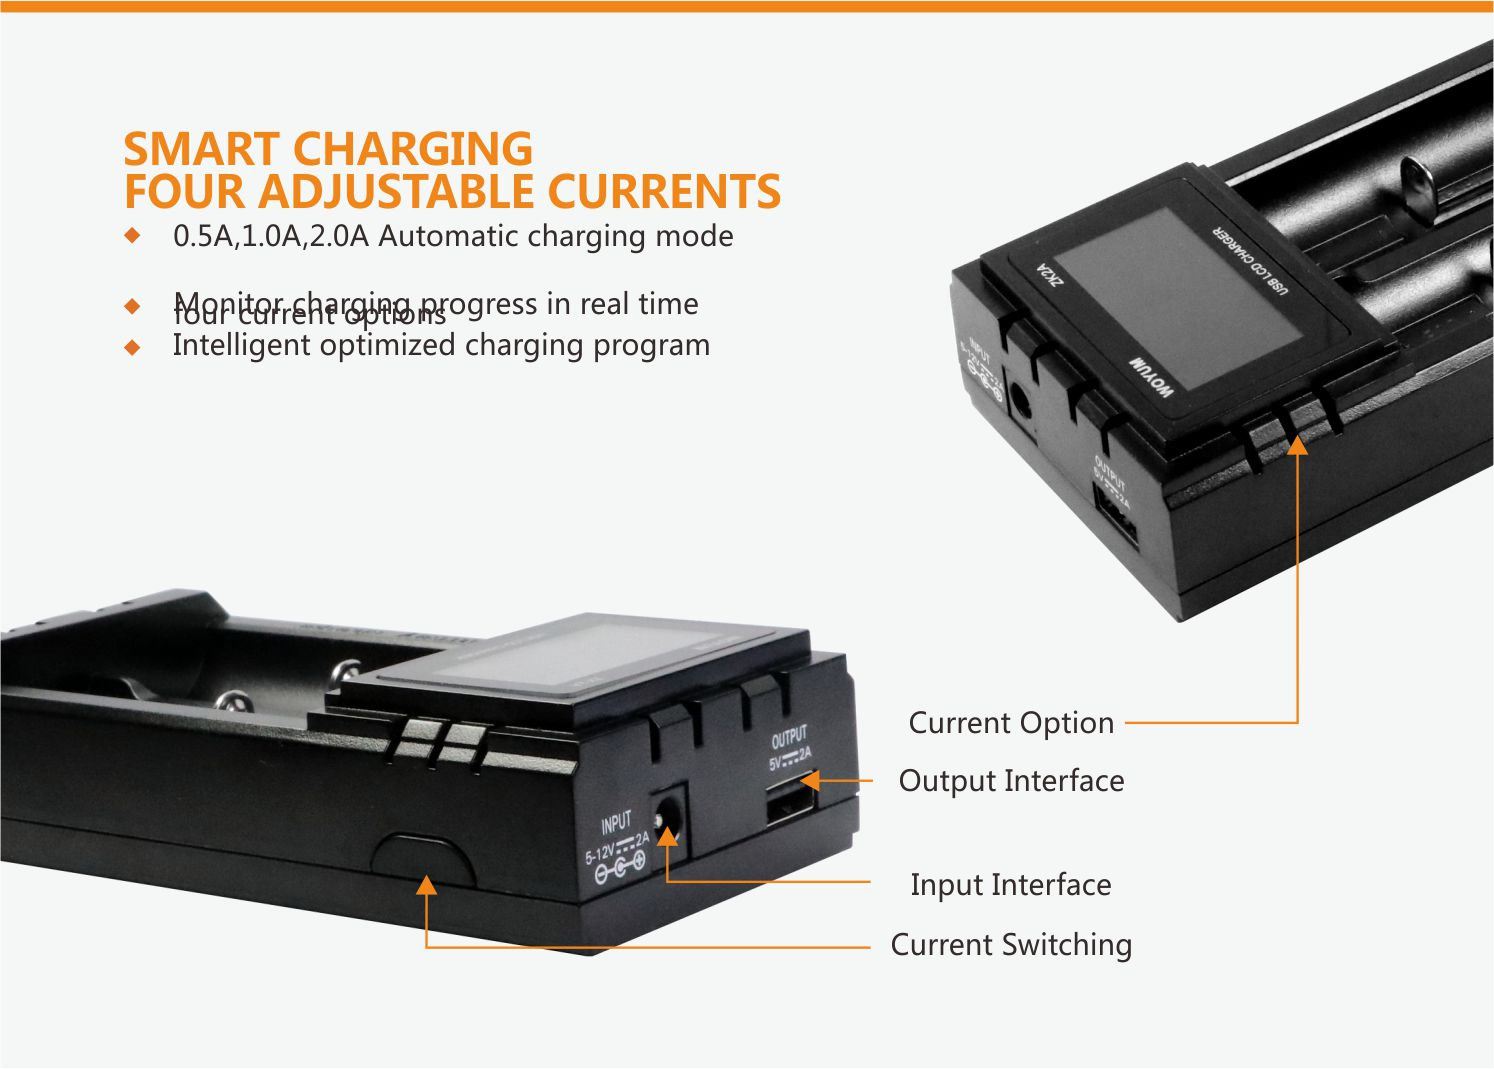 application-Woyum Best top battery chargers for business for IMR-Woyum-img-1